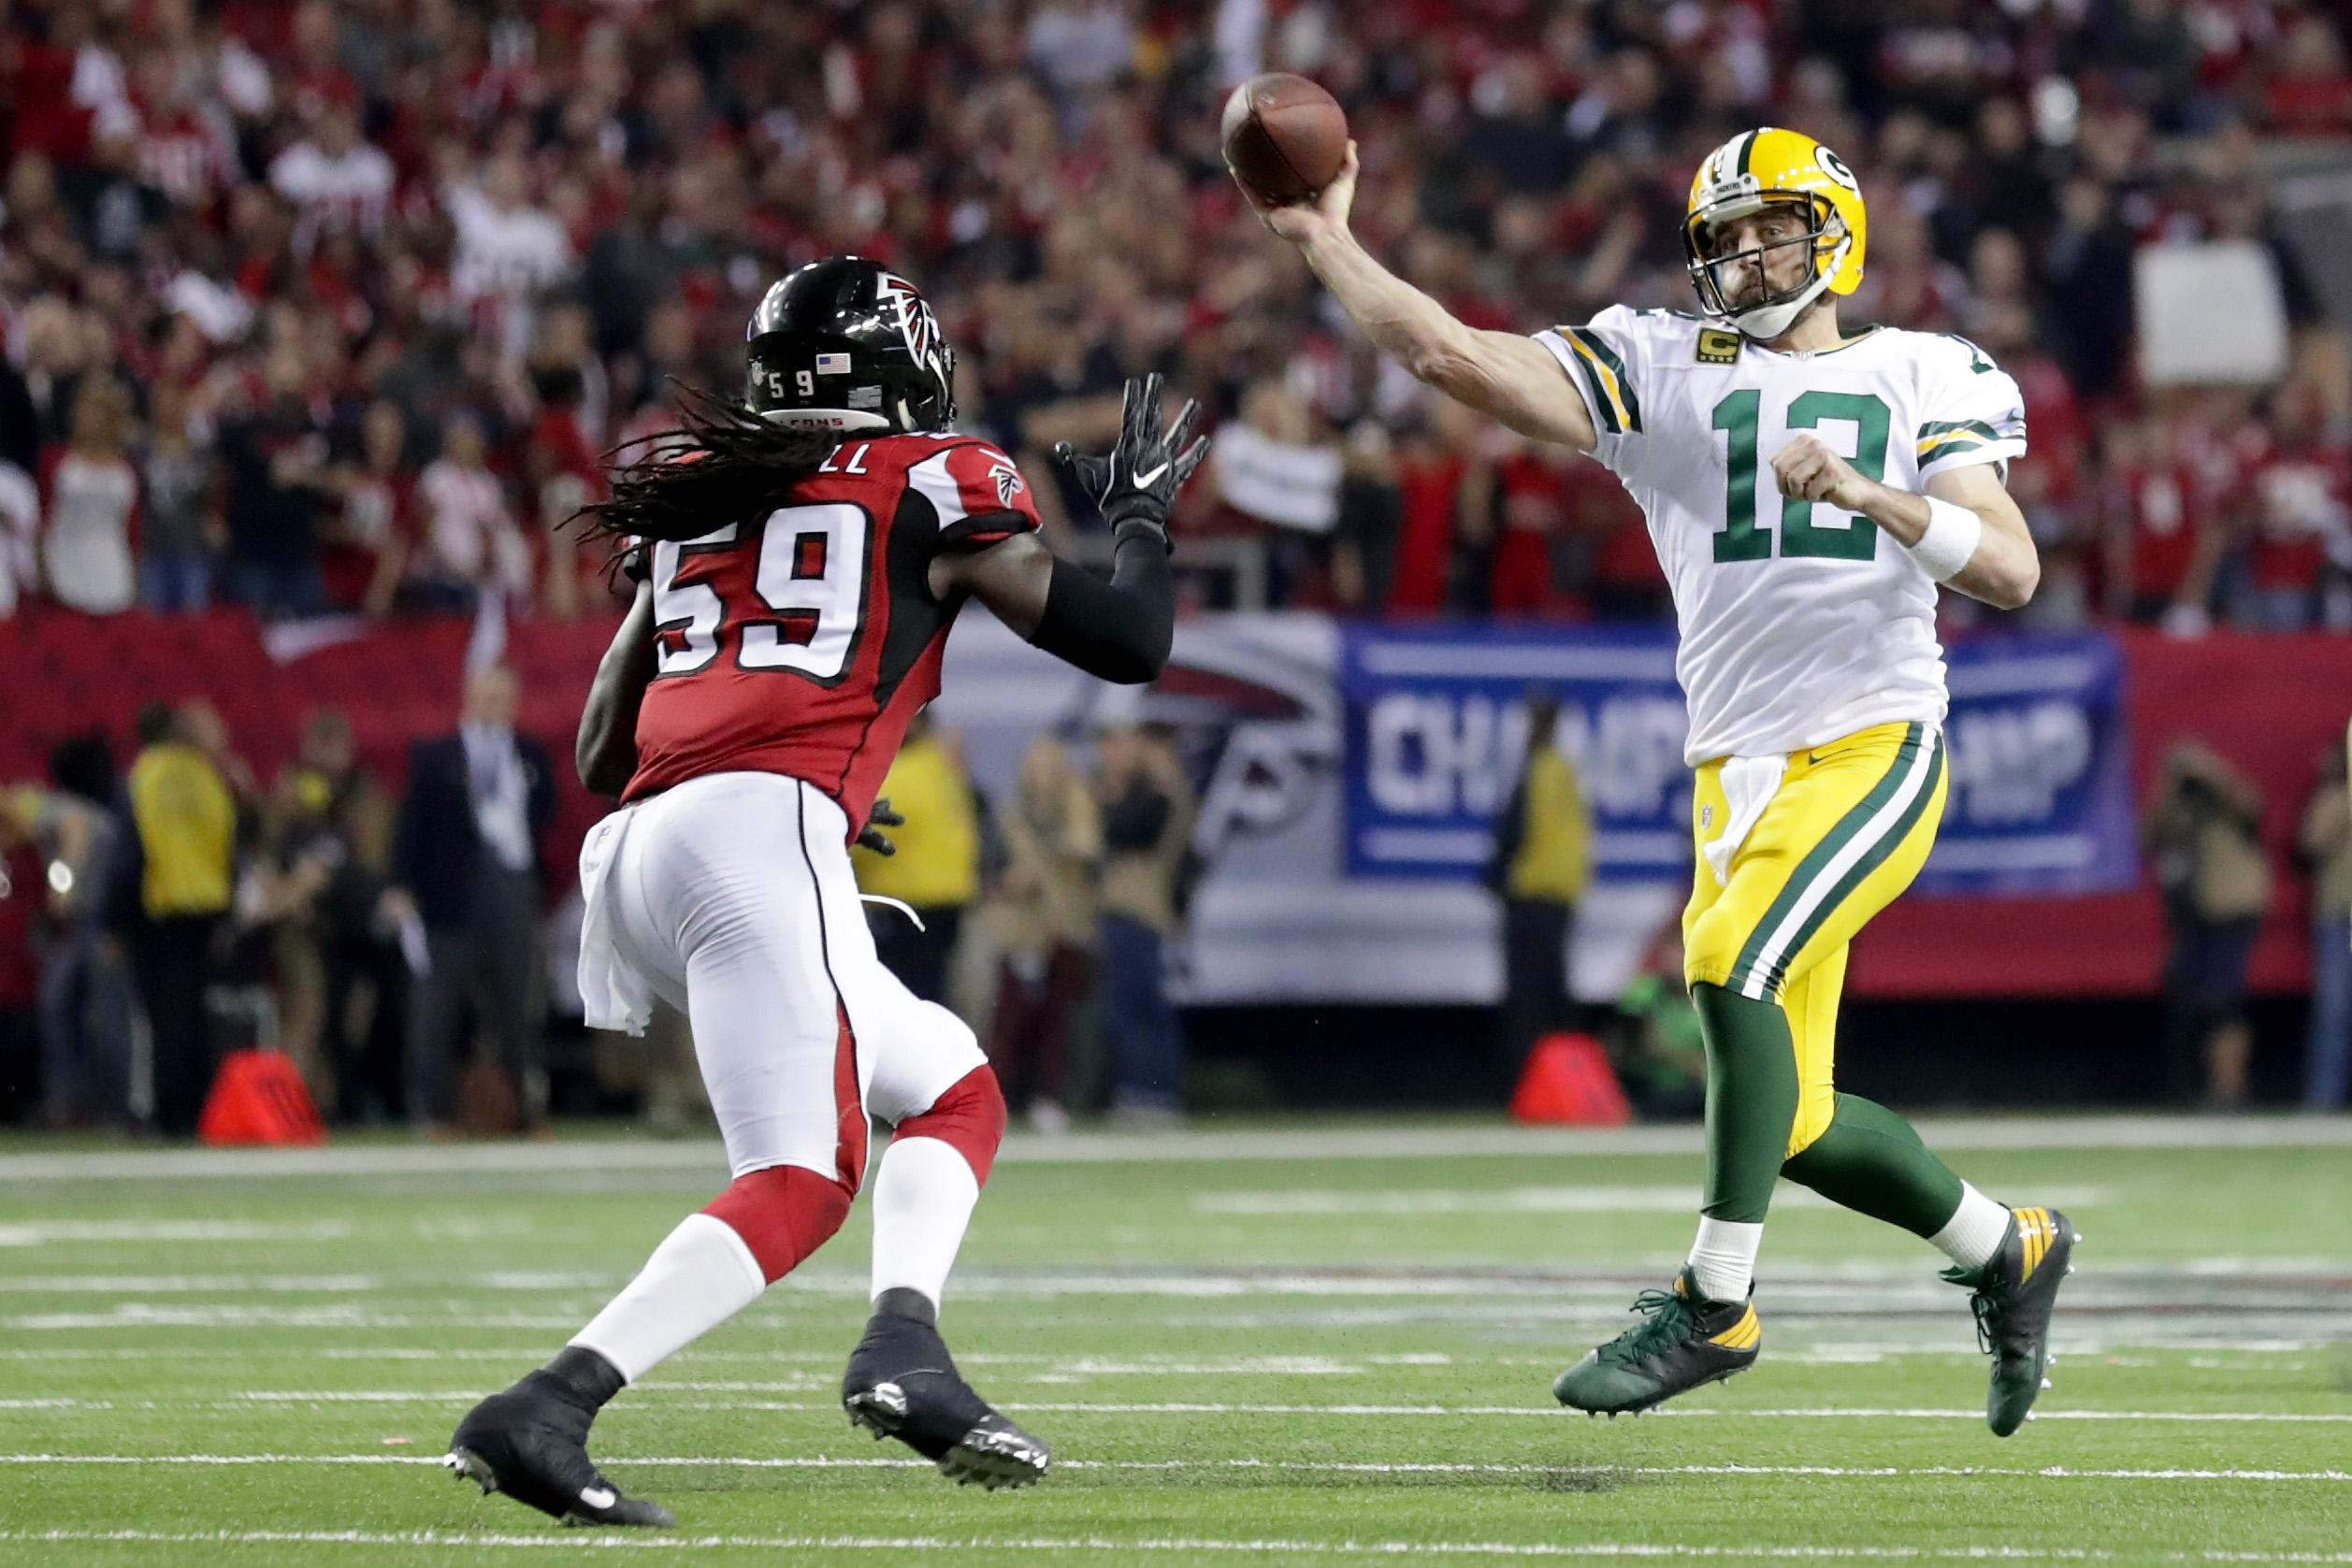 Falcons Vs Packers 2020 Prediction Line Over Under For Monday Night Football Game